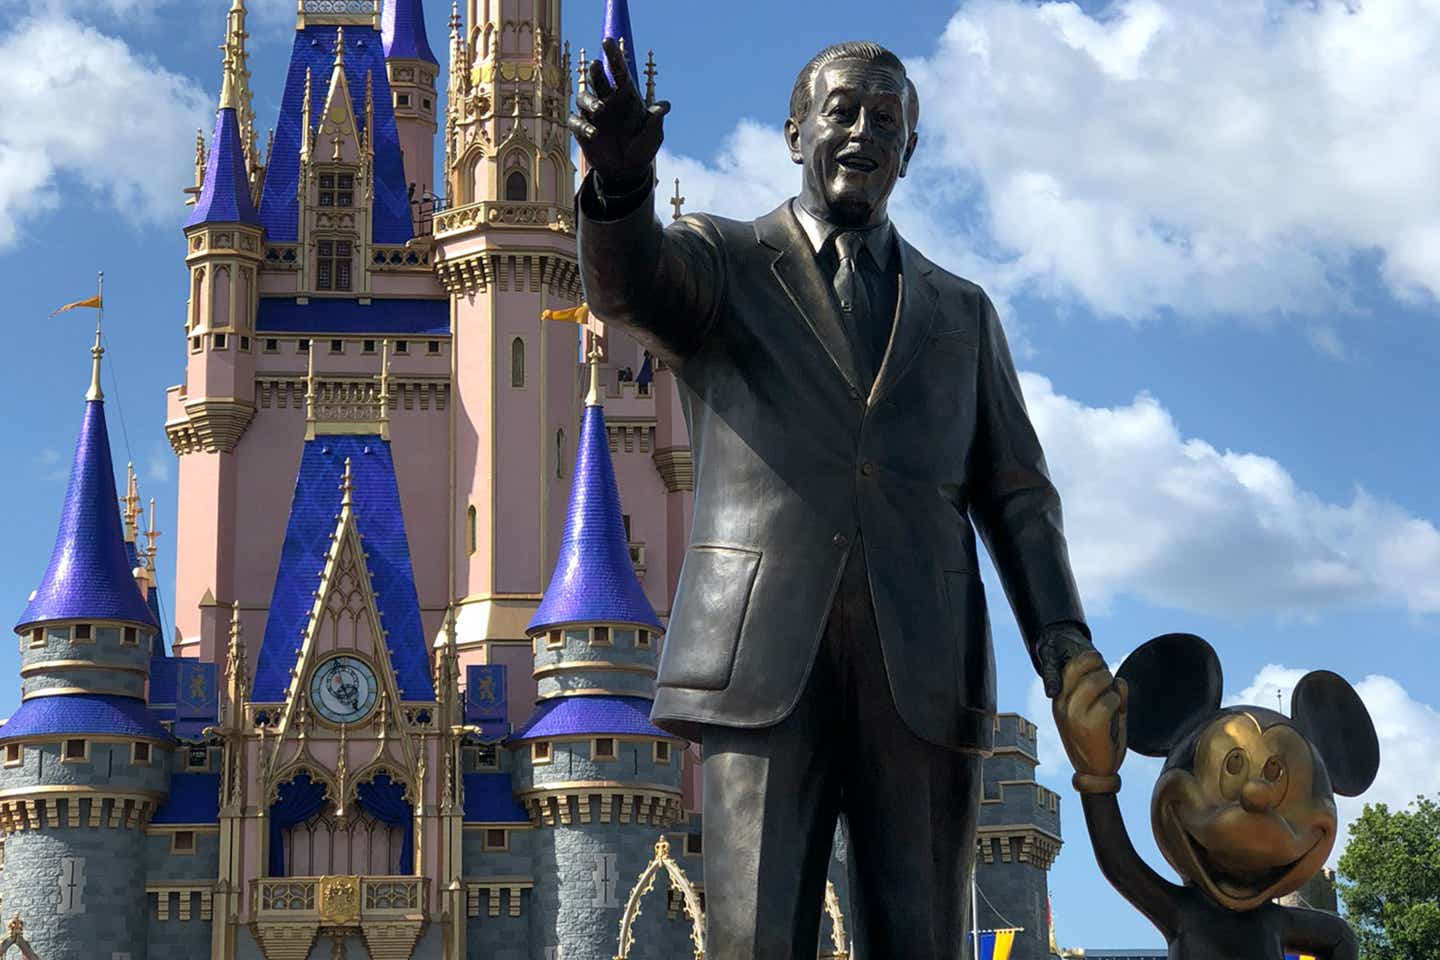 The 'Partners Statue' in front of Cinderella's Castle at Magic Kingdom at Walt Disney World Resort.